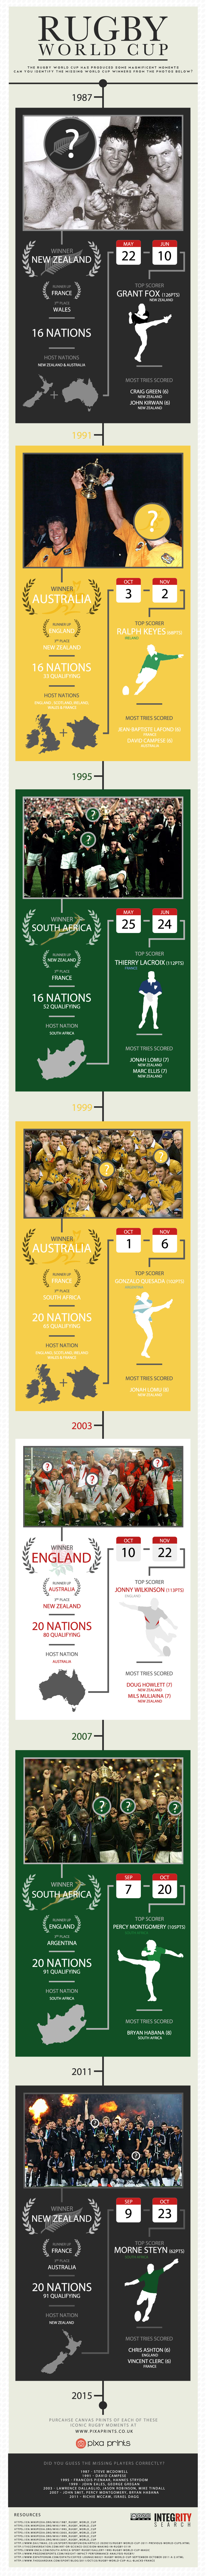 Rugby World Cup: Who Are The Missing Players Infographic